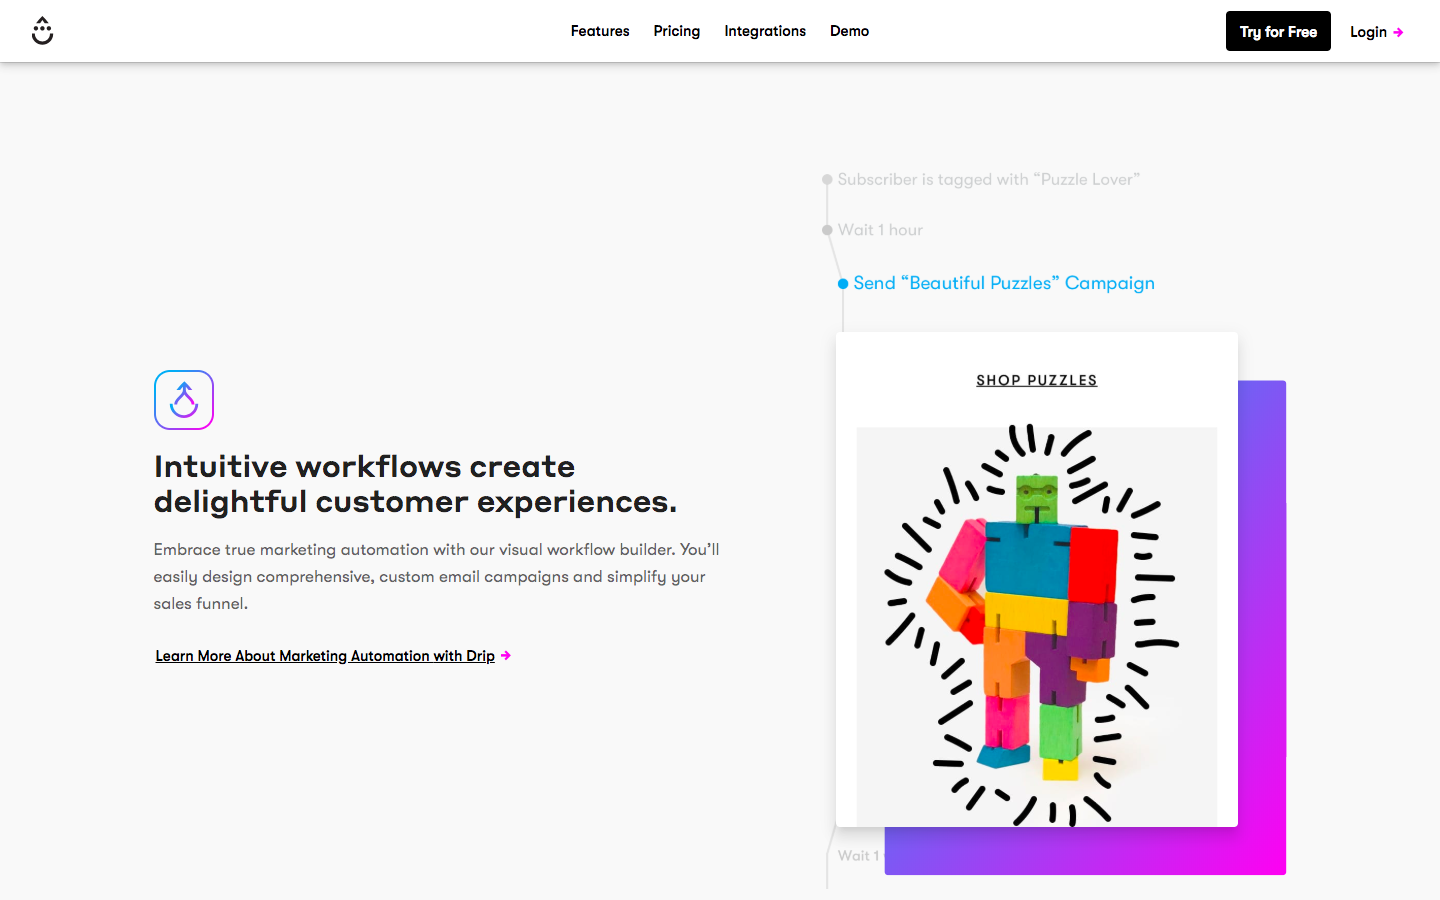 Workflow section of Drip's homepage